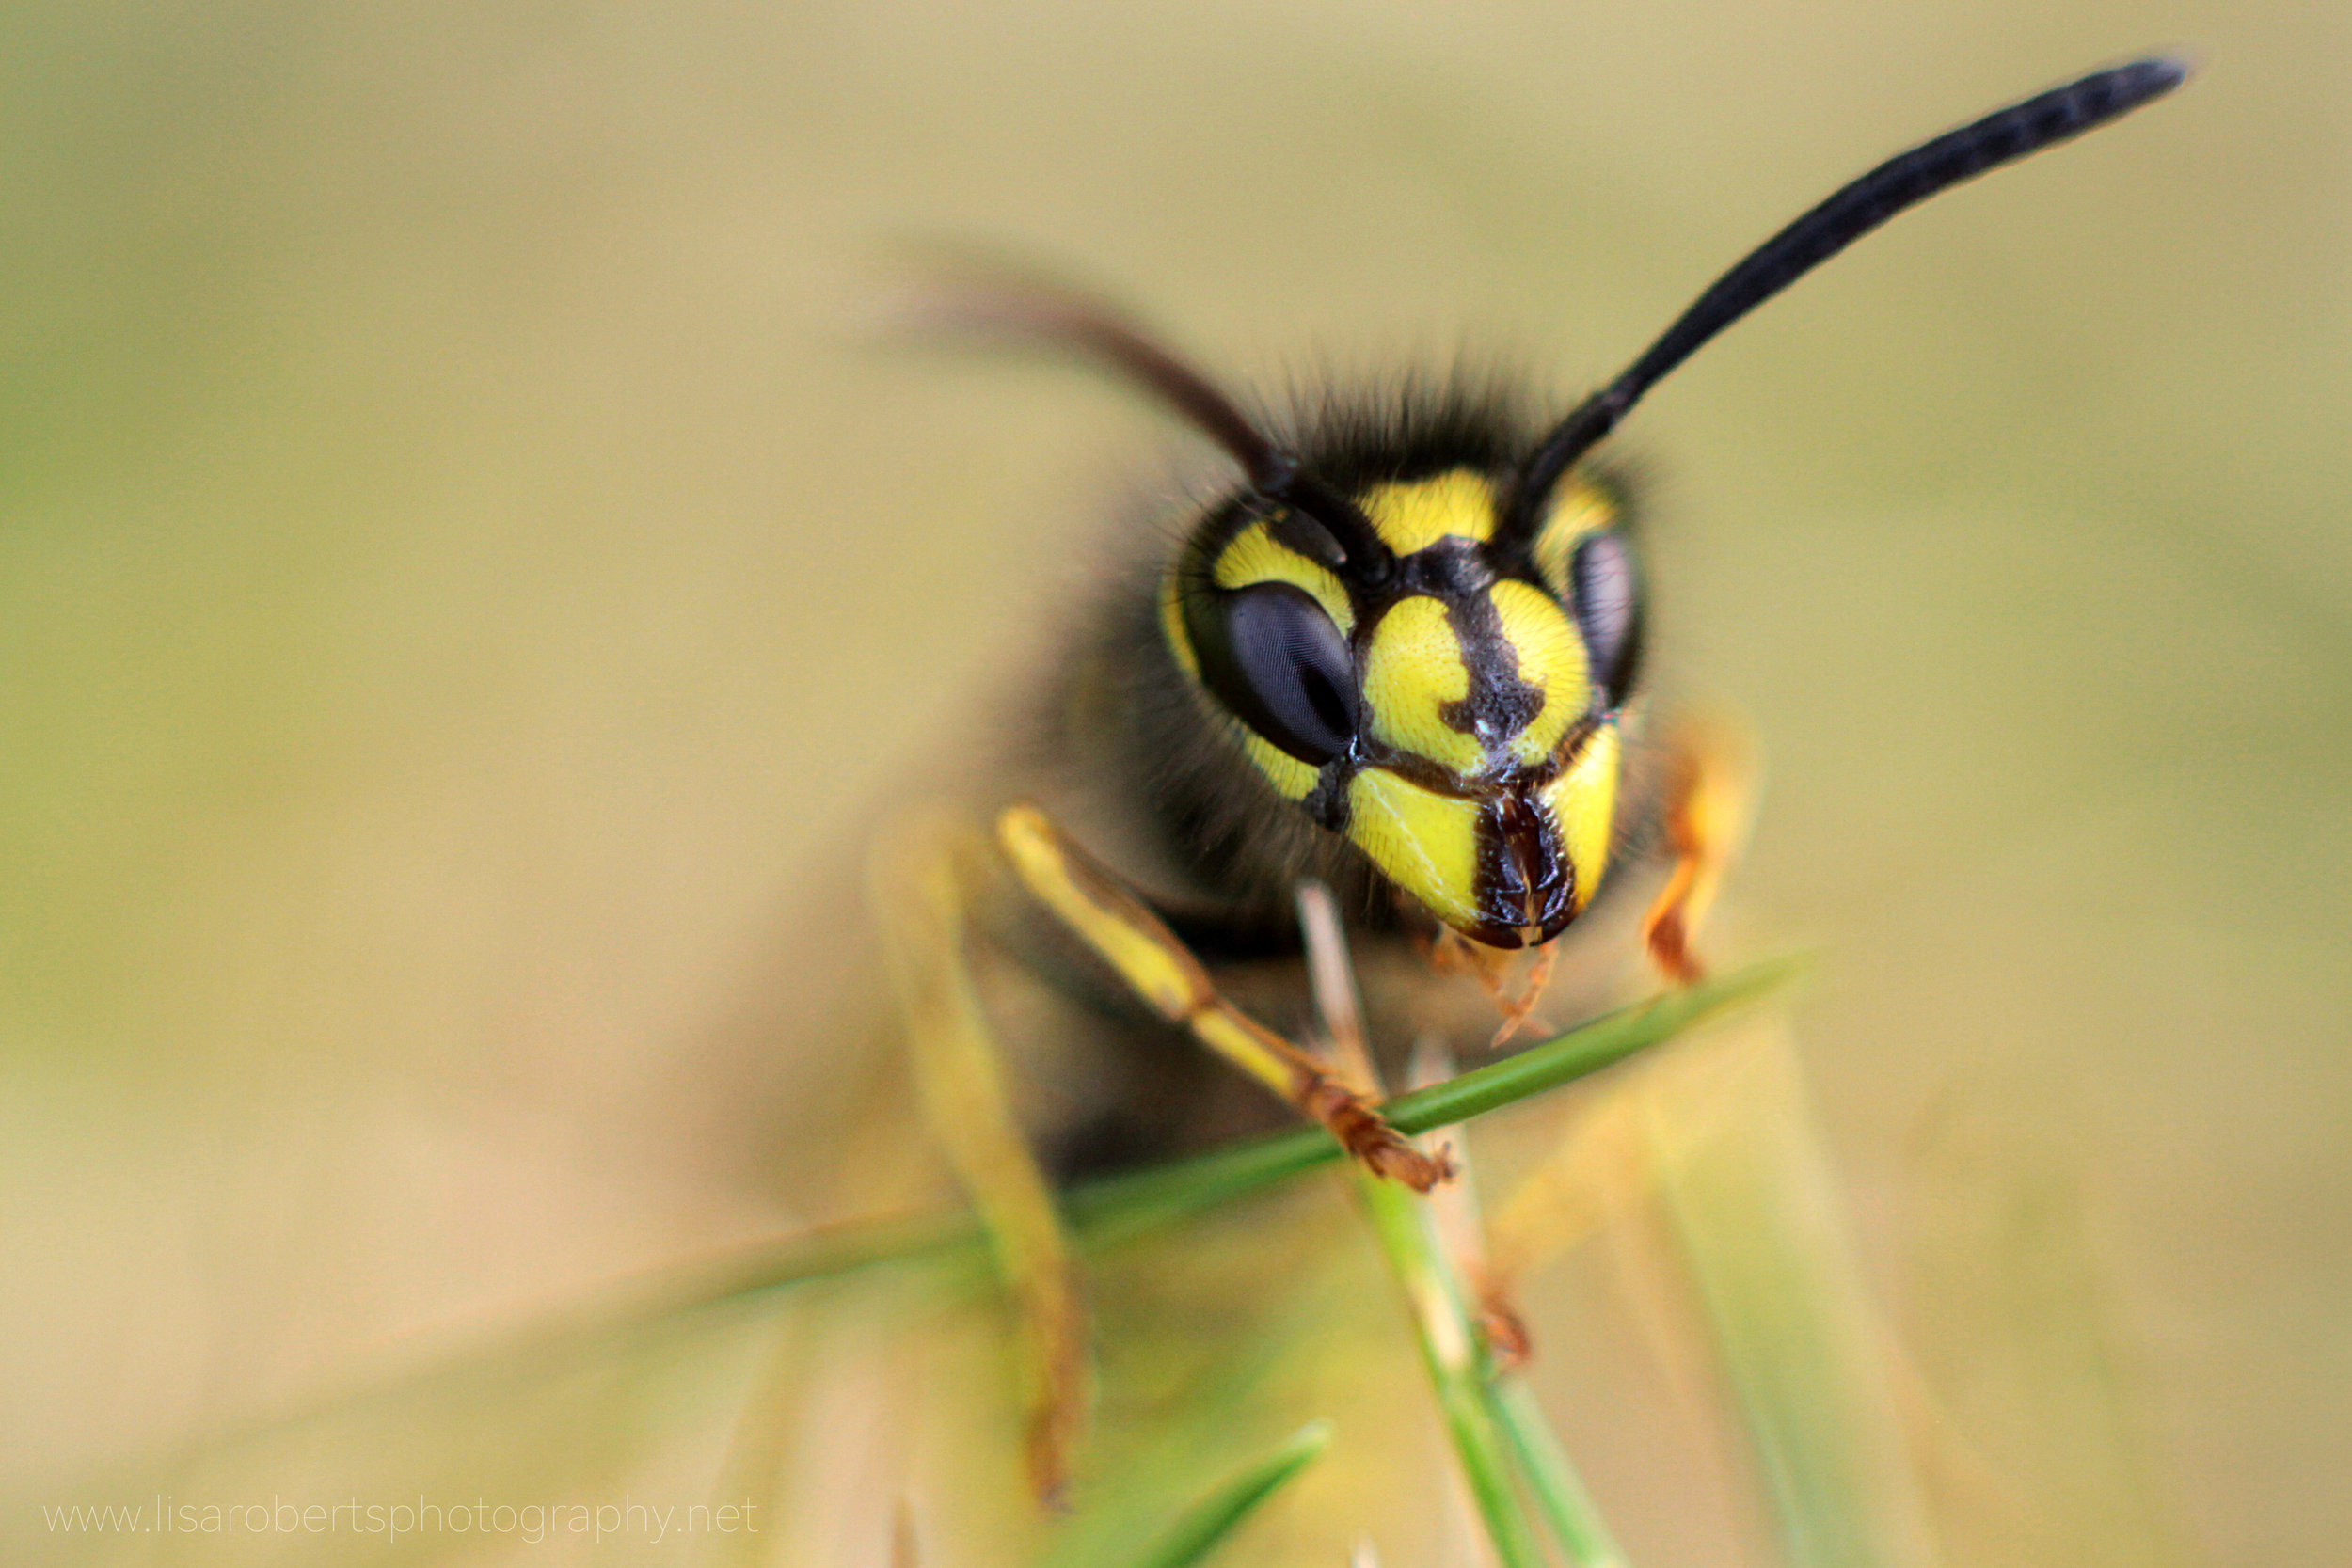 Wasp front view